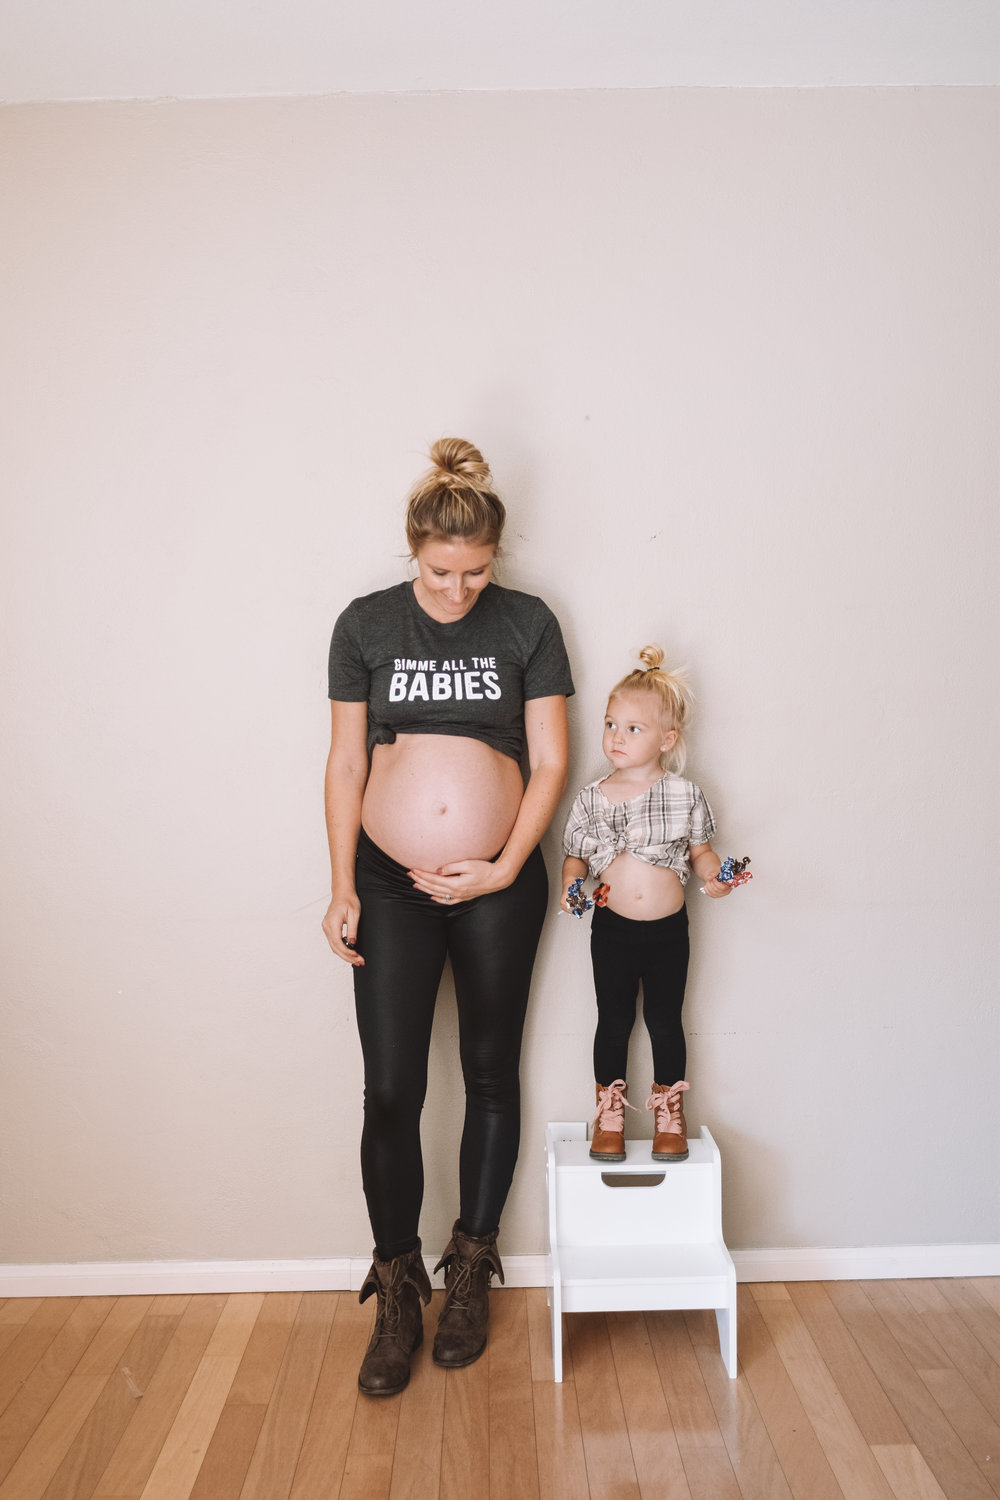 21 Week Pregnant Belly - Funny Pregnancy Shirts - The Overwhelmed Mommy Blogger